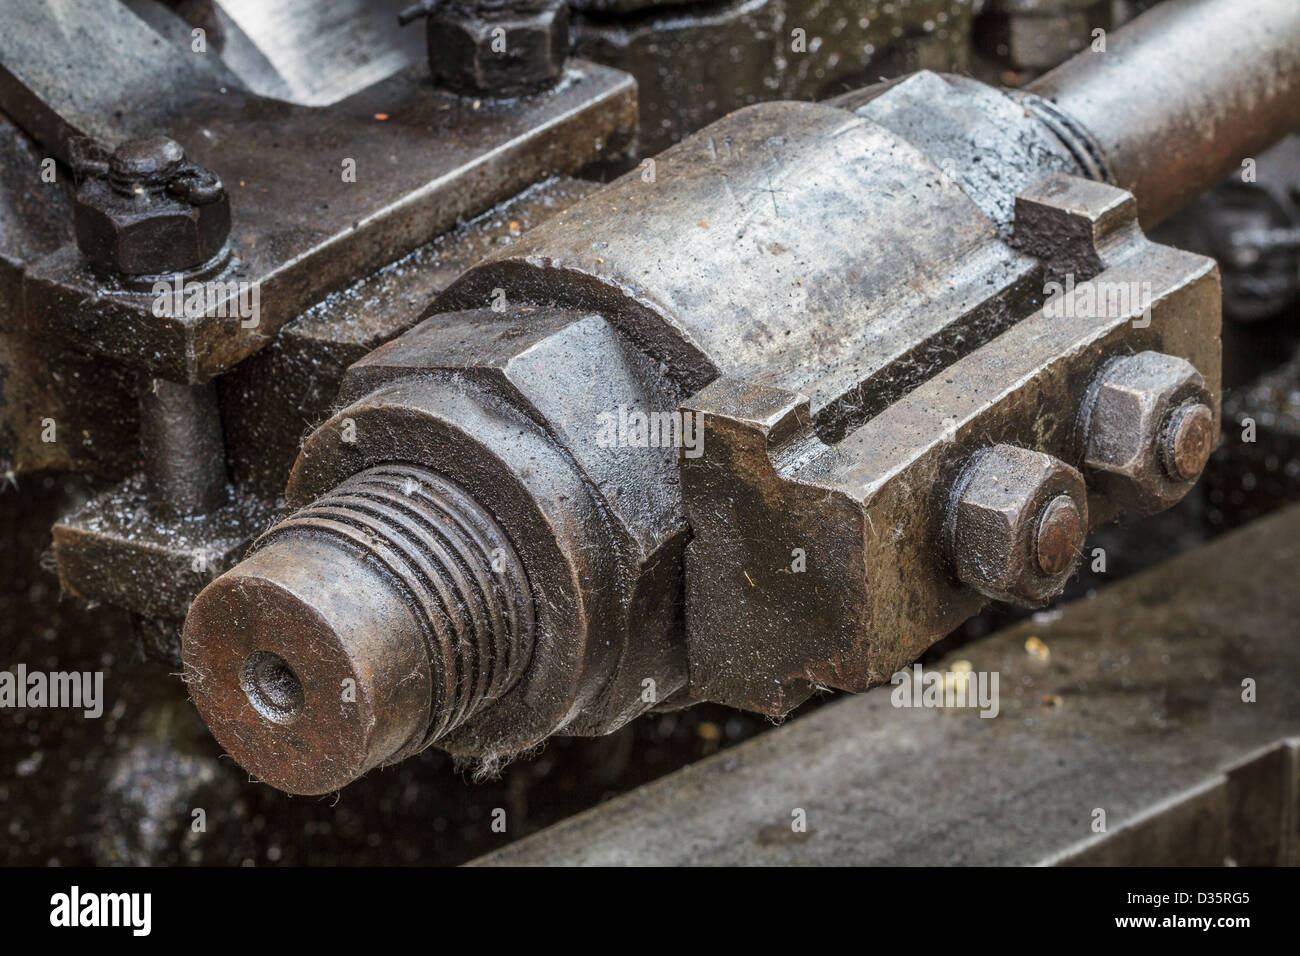 Details of old greasy machinery / steam engine - Stock Image